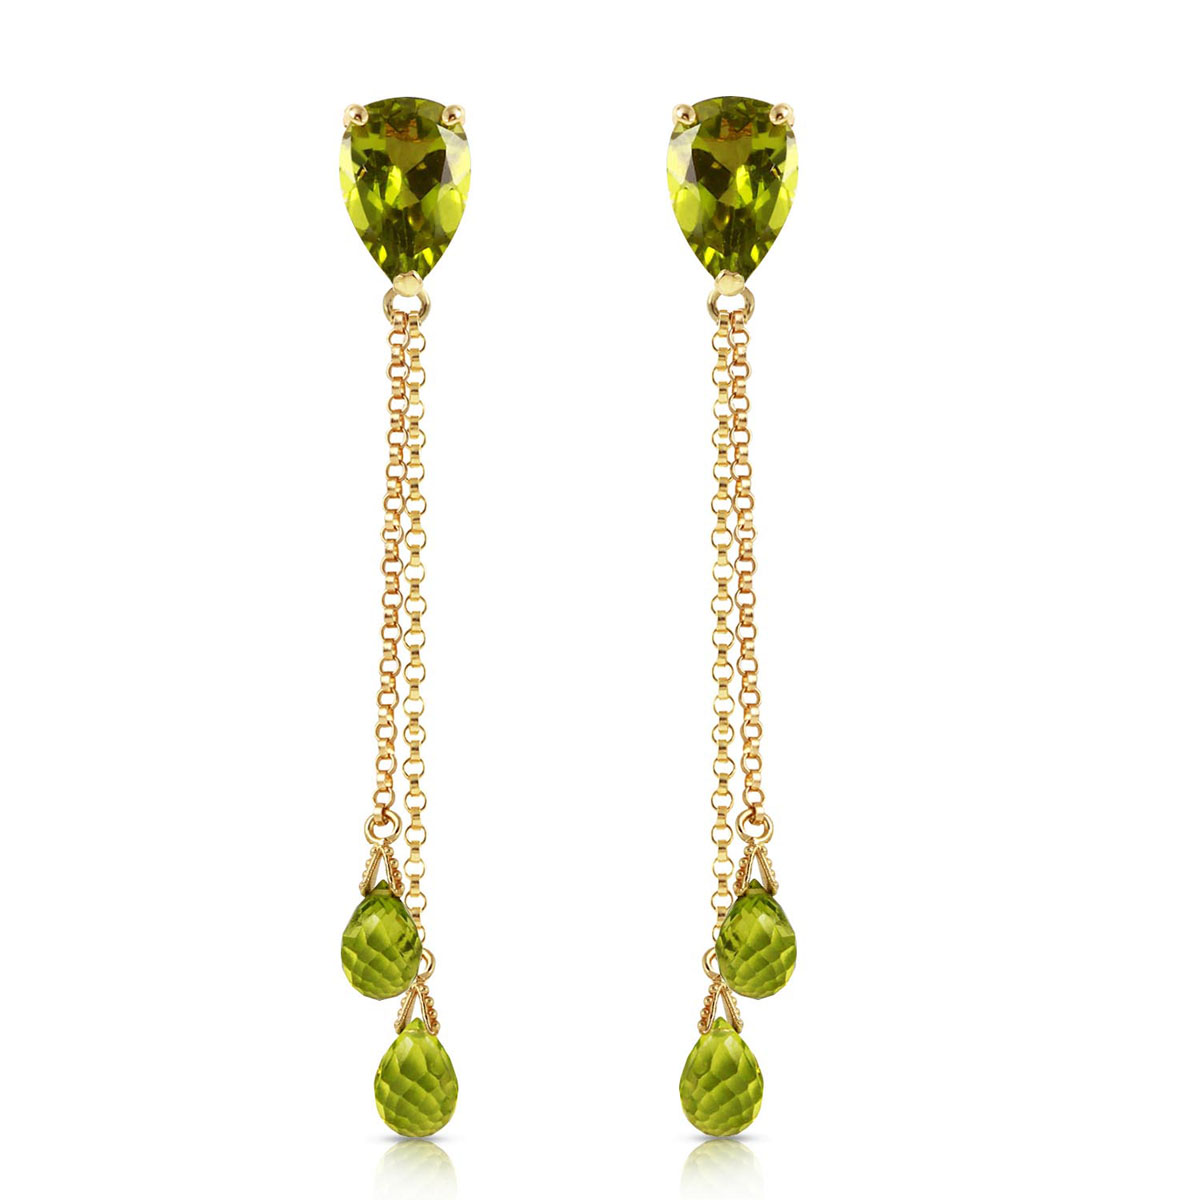 Peridot Droplet Earrings 7.5 ctw in 9ct Gold